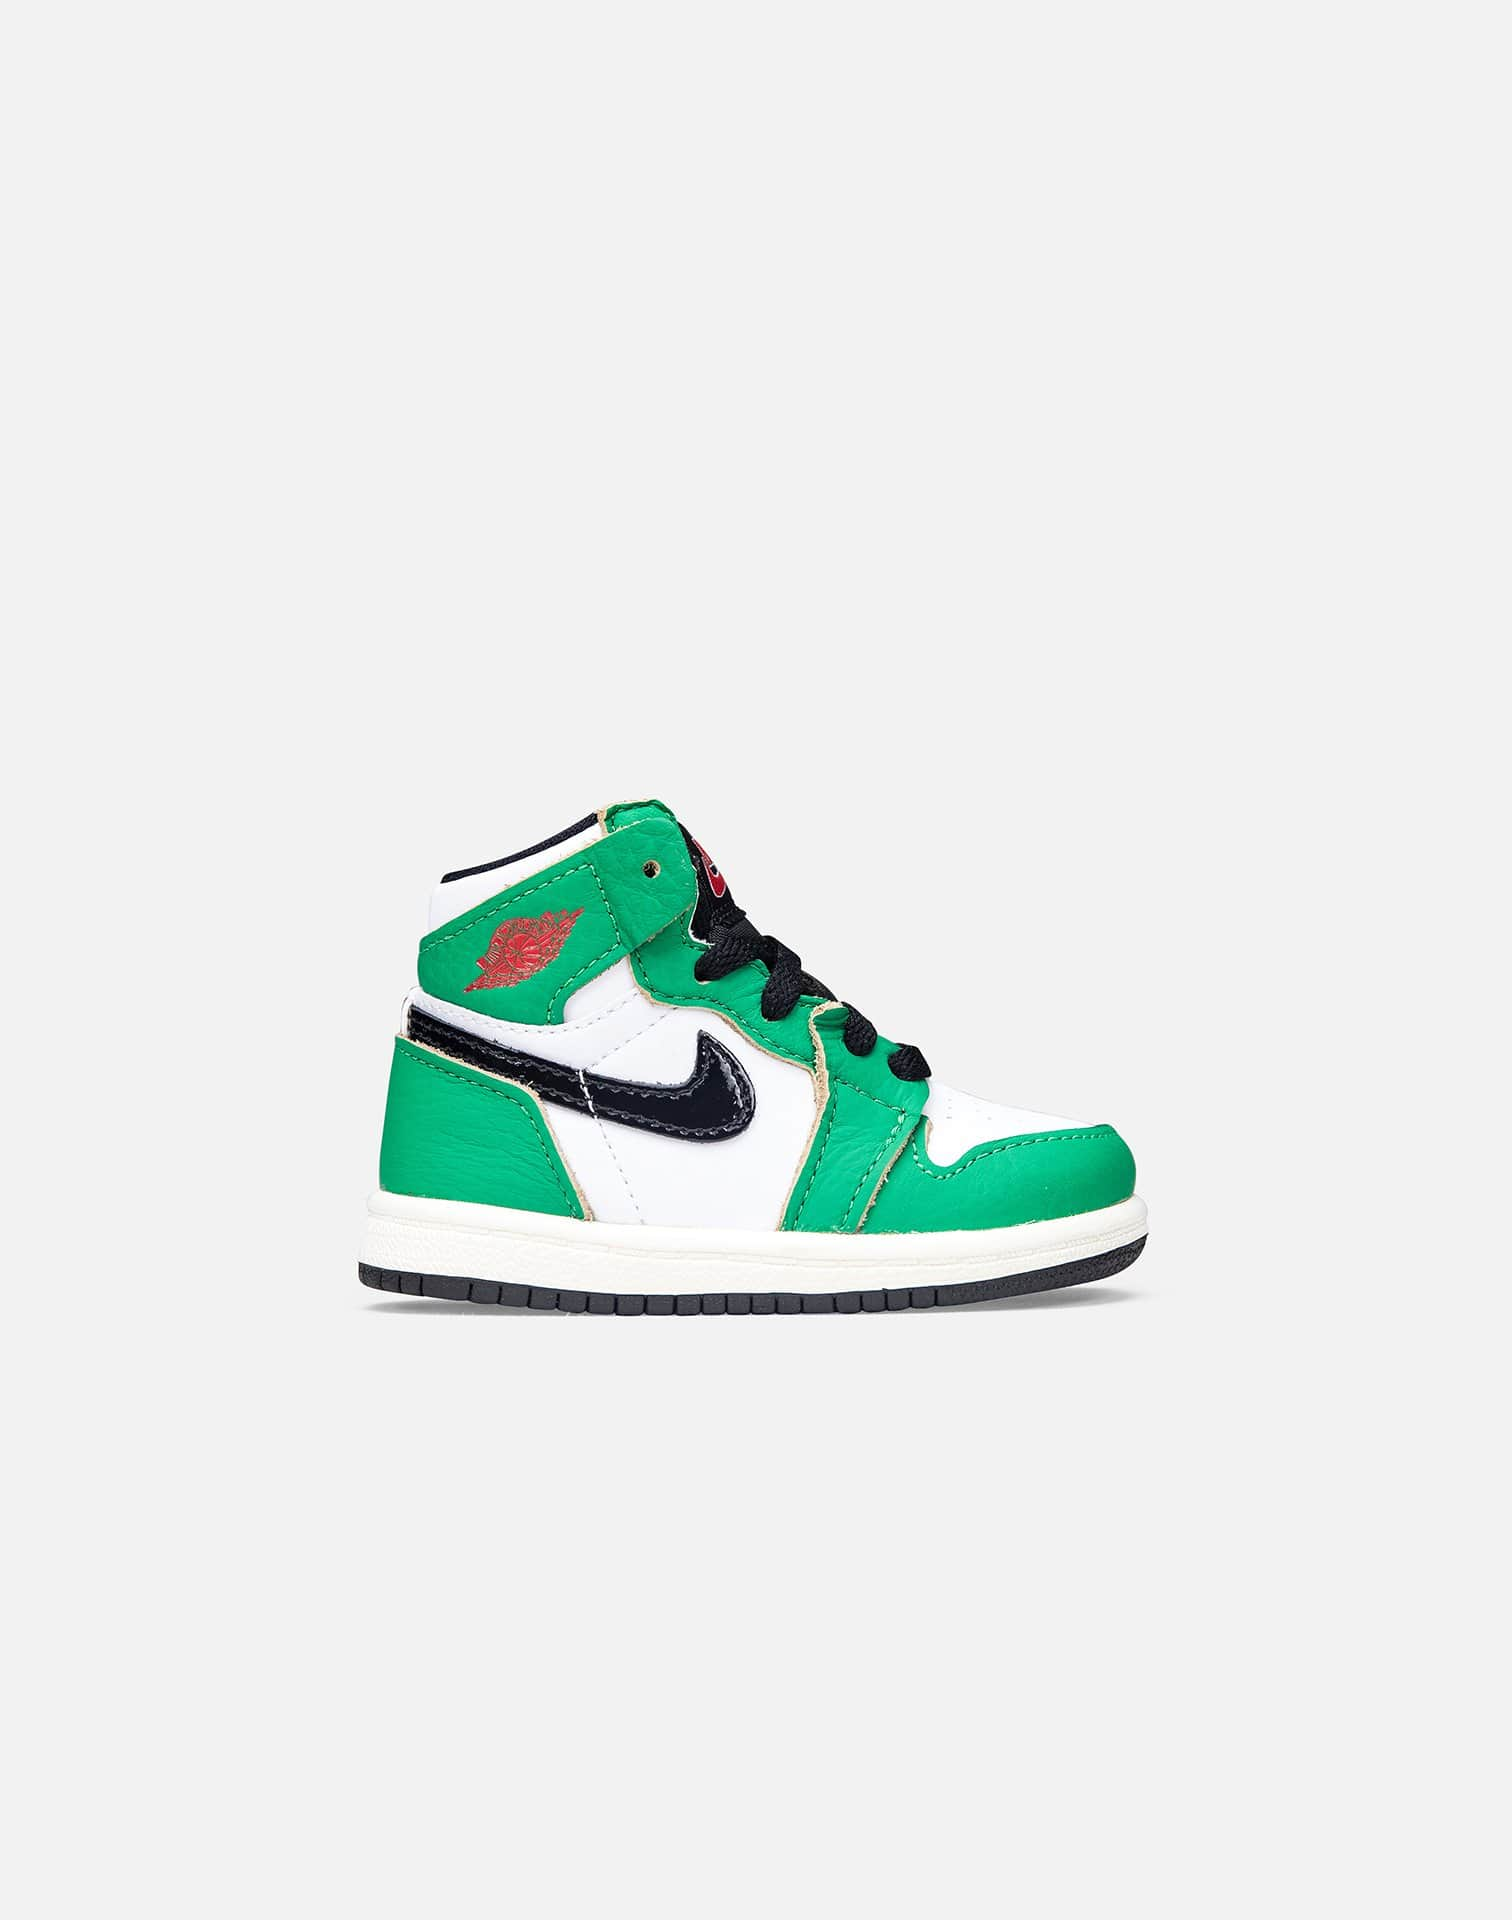 Jordan AIR JORDAN RETRO 1 HIGH 'LUCKY GREEN' INFANT